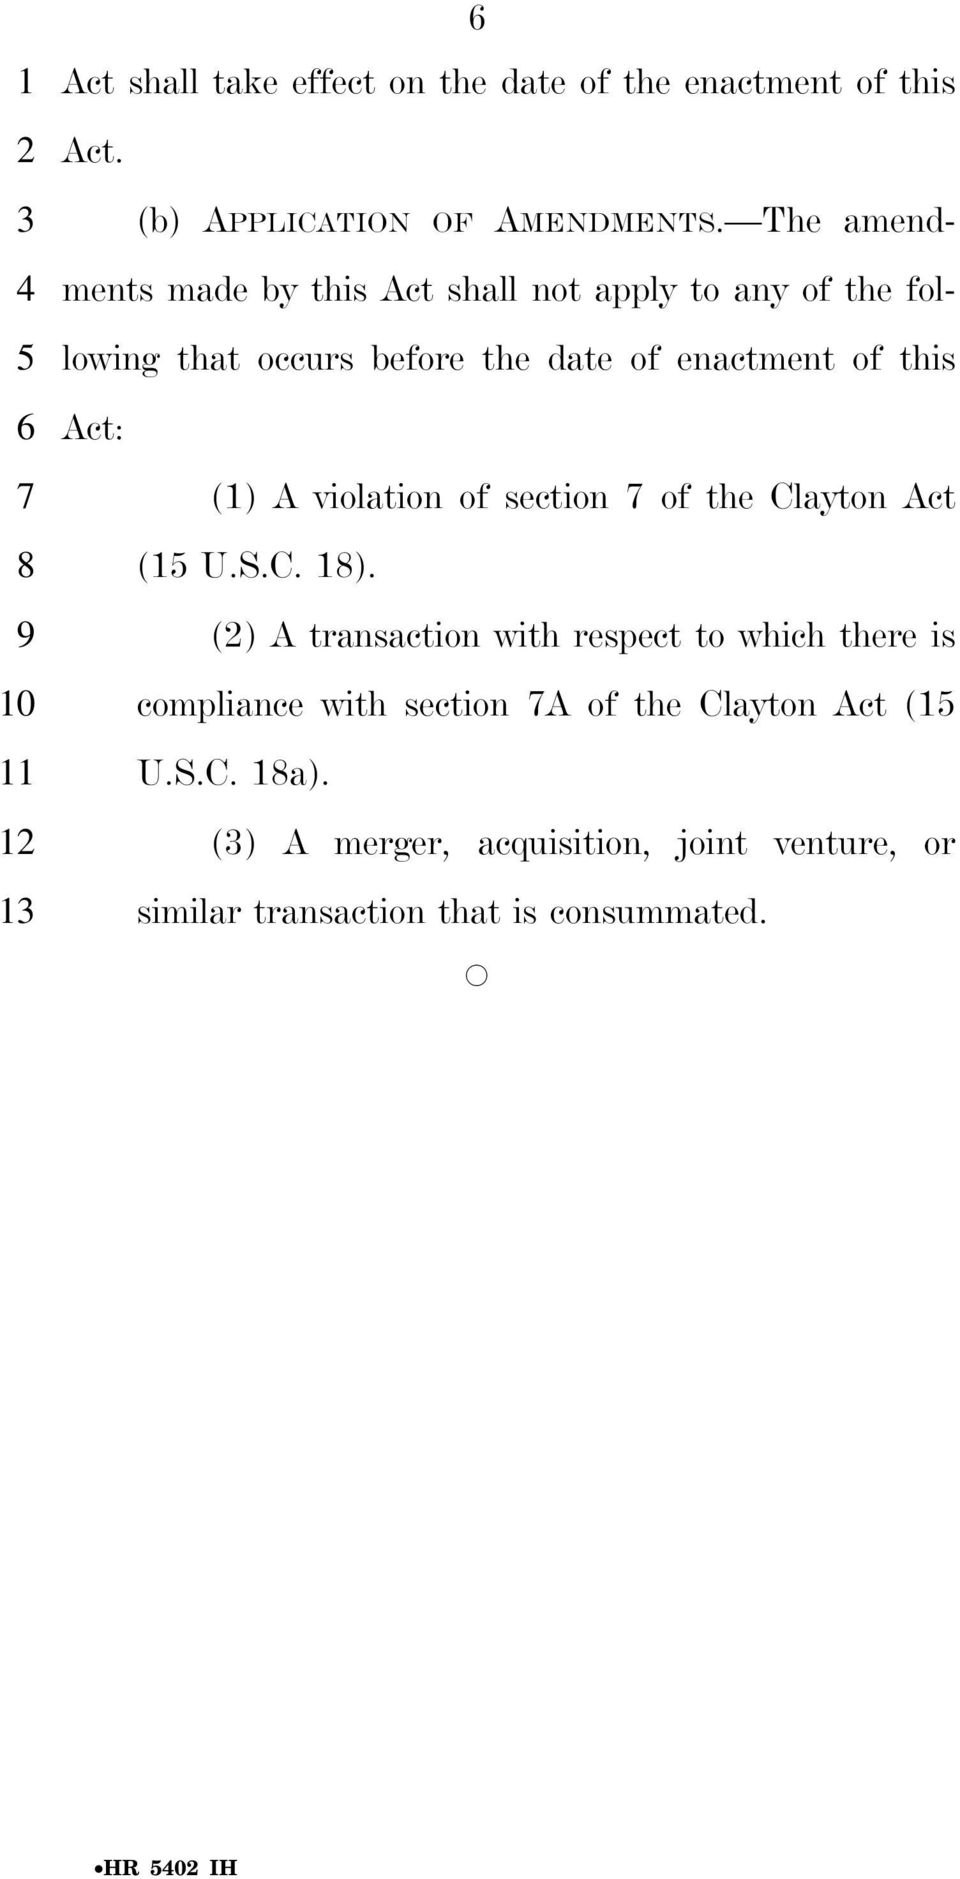 of the Clayton Act (1 U.S.C. 18). () A transaction with respect to which there is compliance with section A of the Clayton Act (1 U.S.C. 18a).